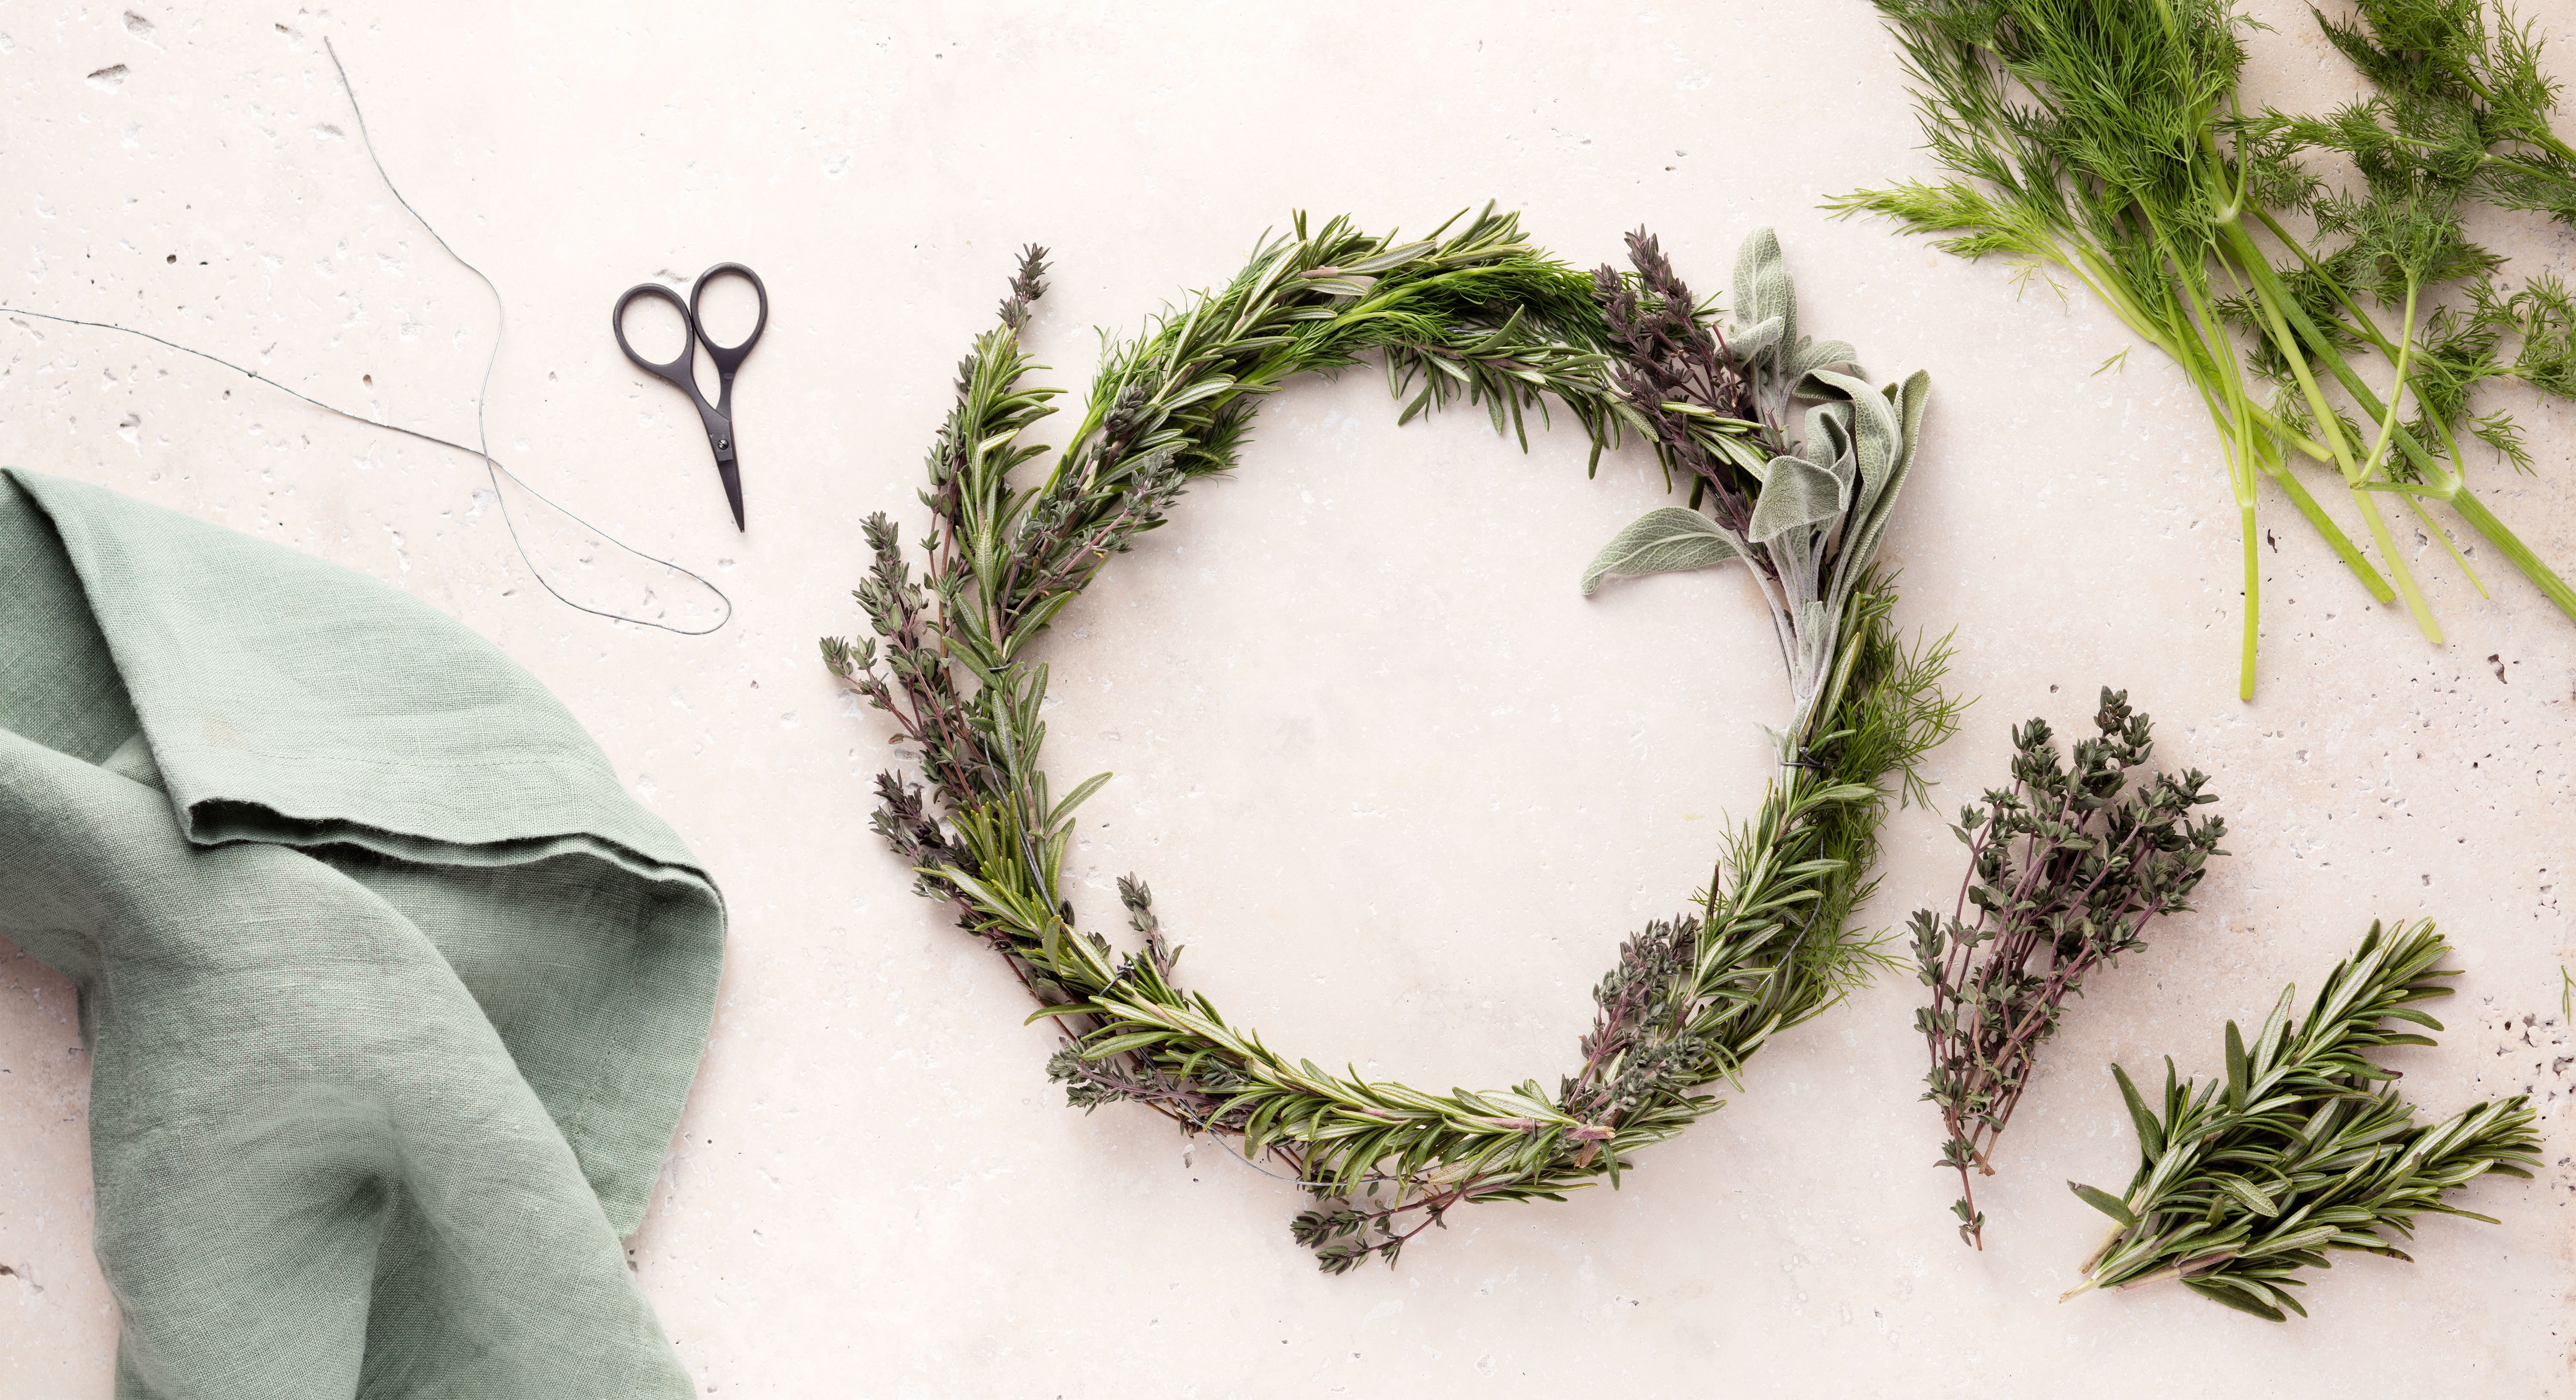 How To Make A DIY Wreath From Fresh Herbs